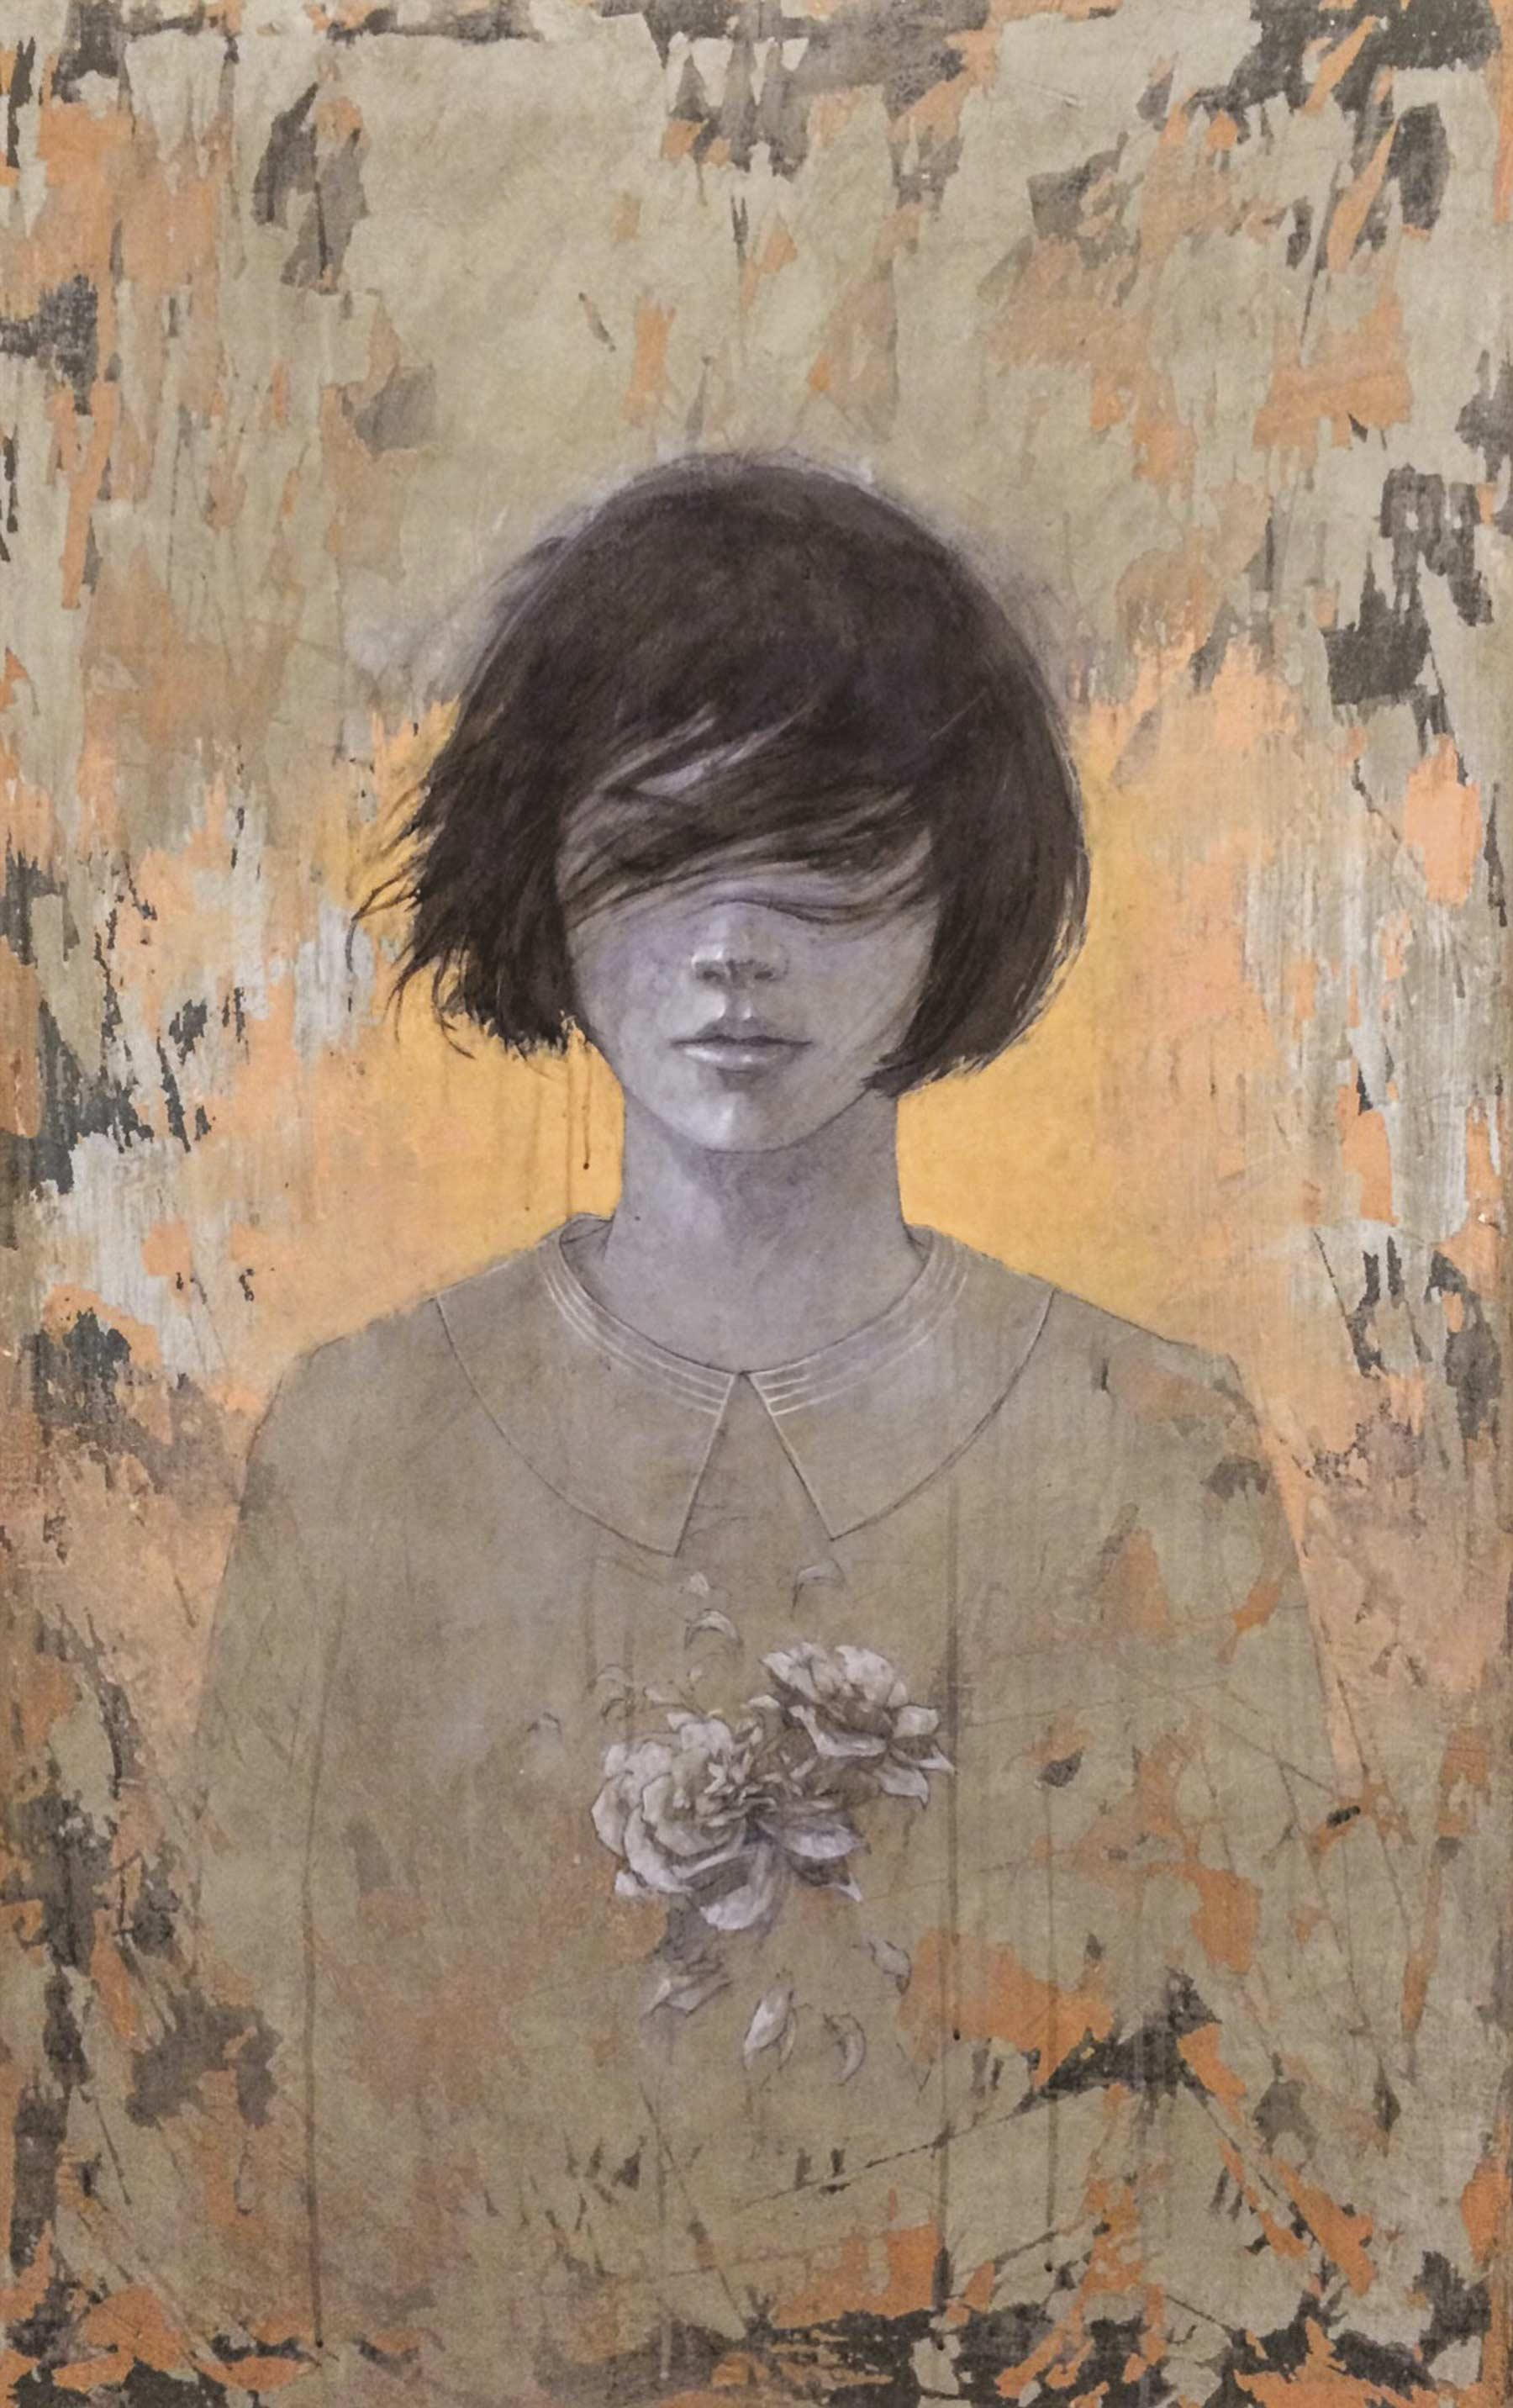 FEDERICO INFANTE   WE CAN SEE THE WIND